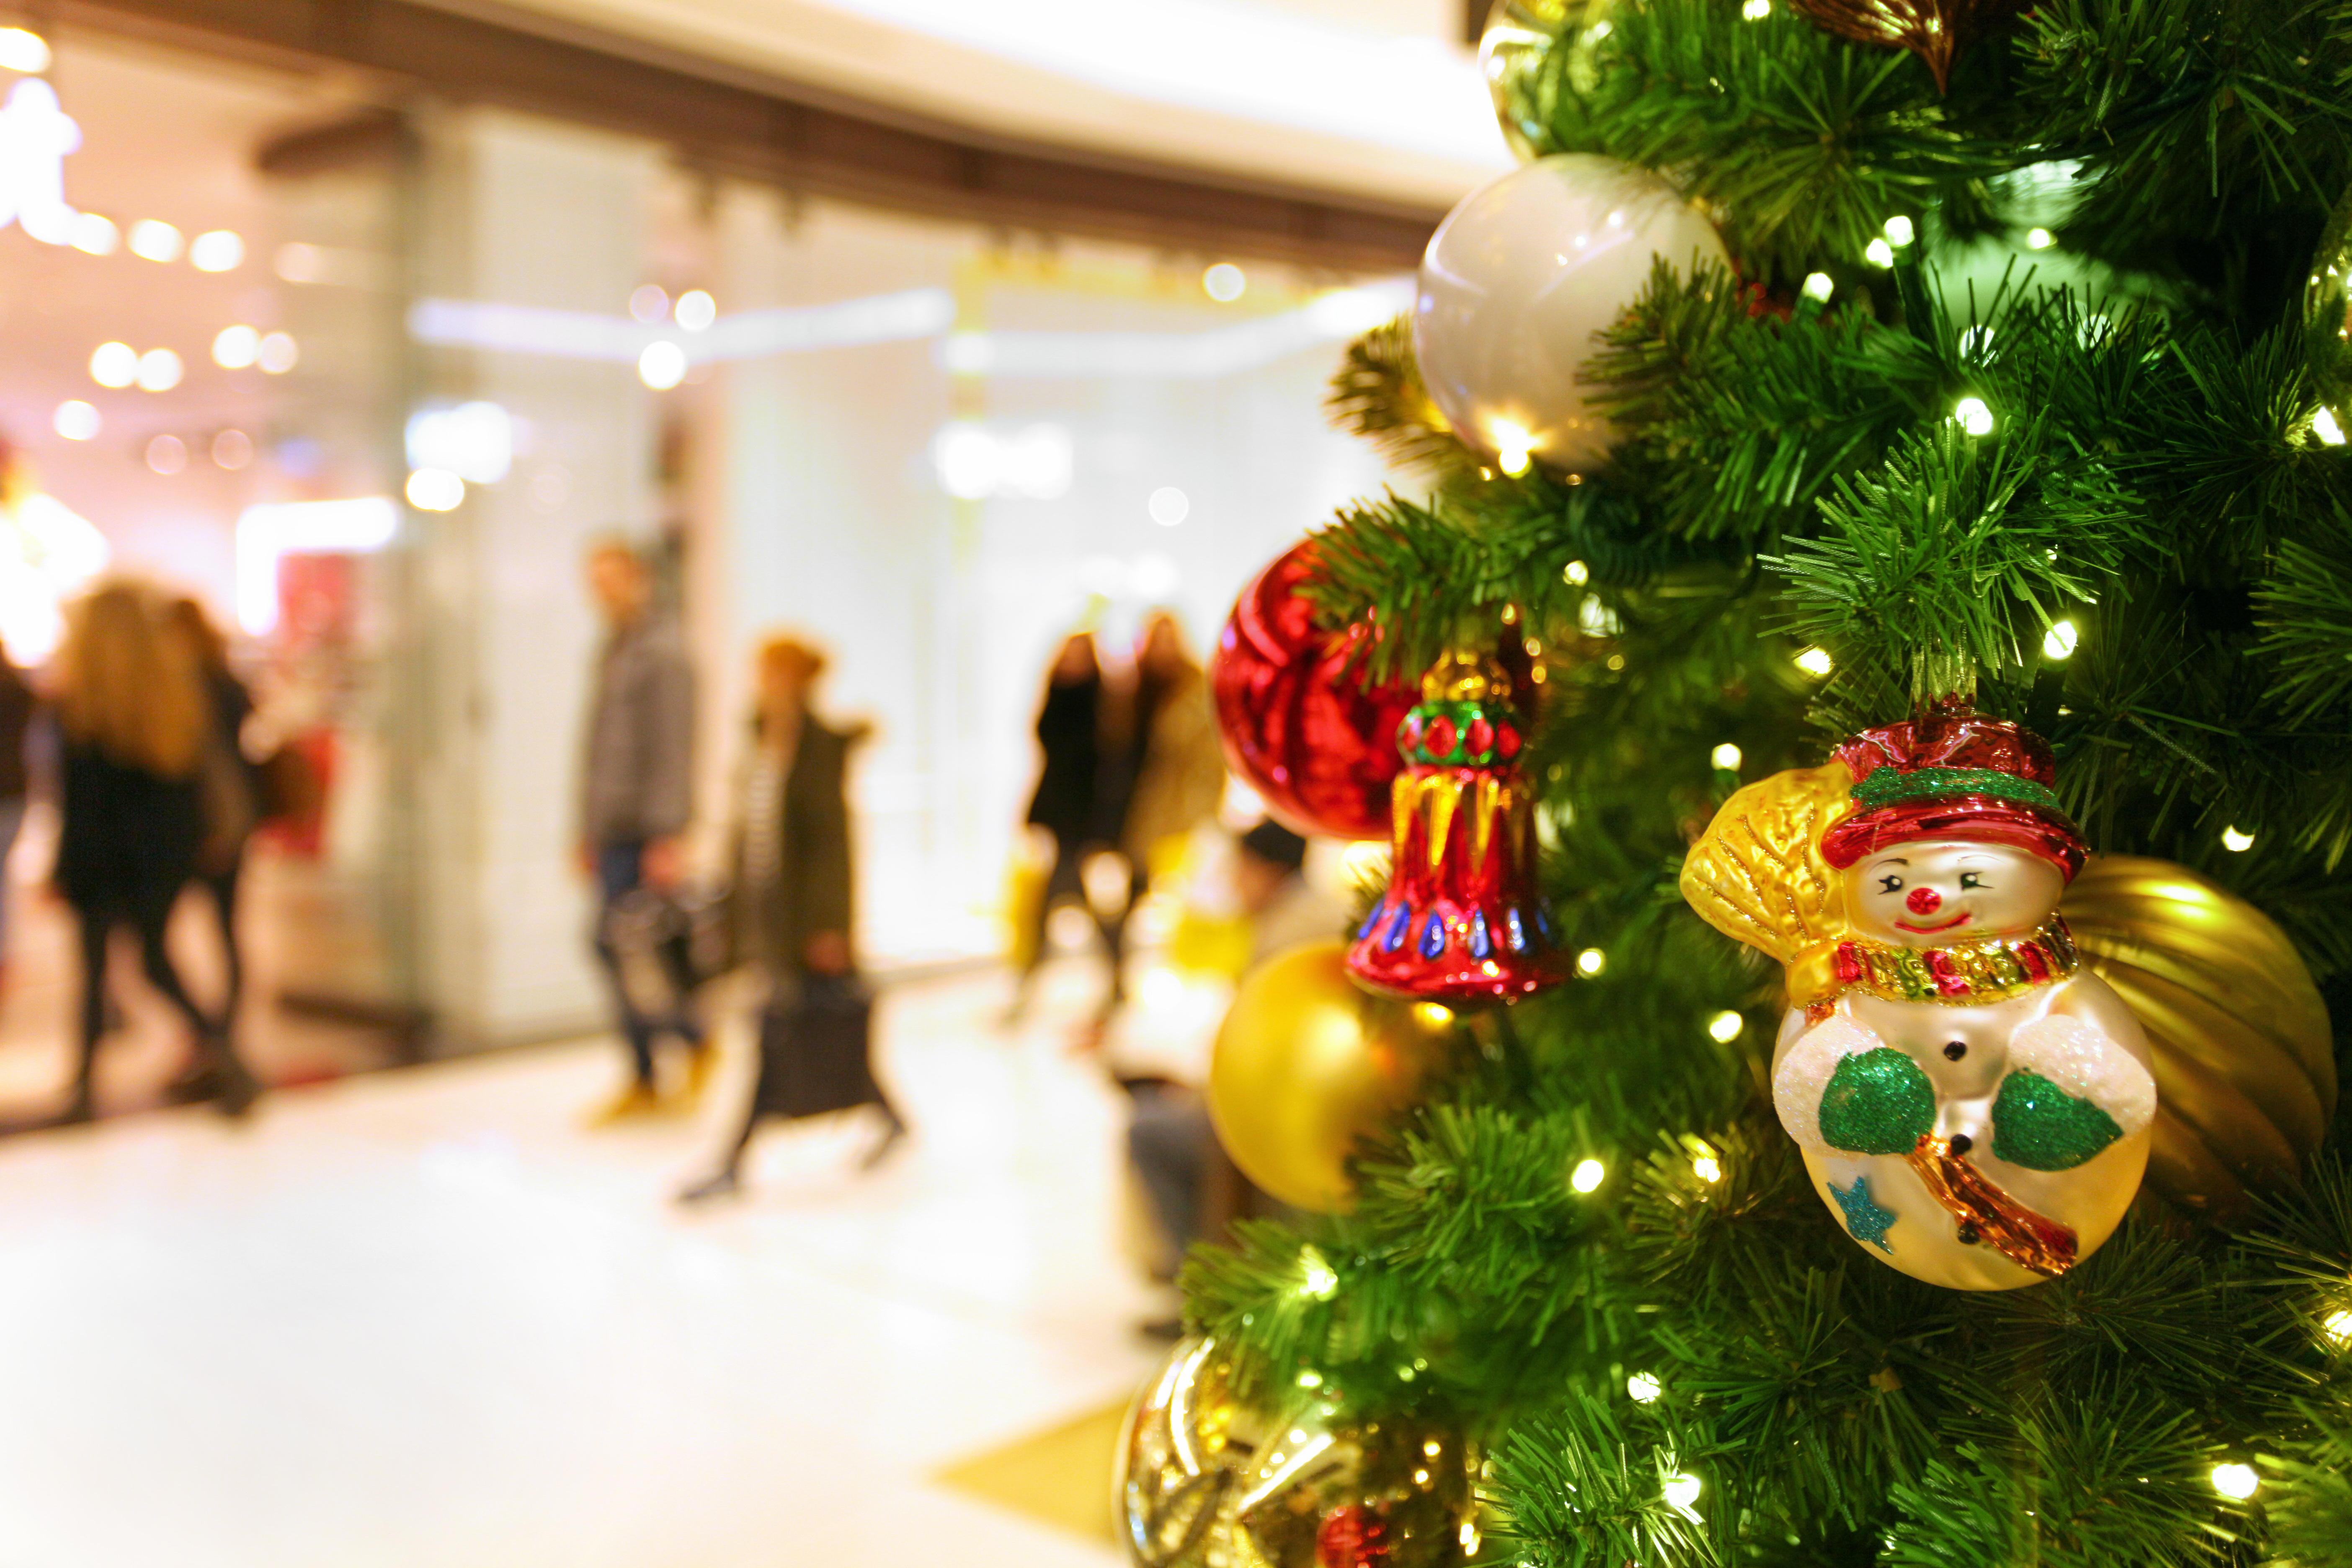 3 Reasons Commercial Building Owners Should Consider Holiday Decorations